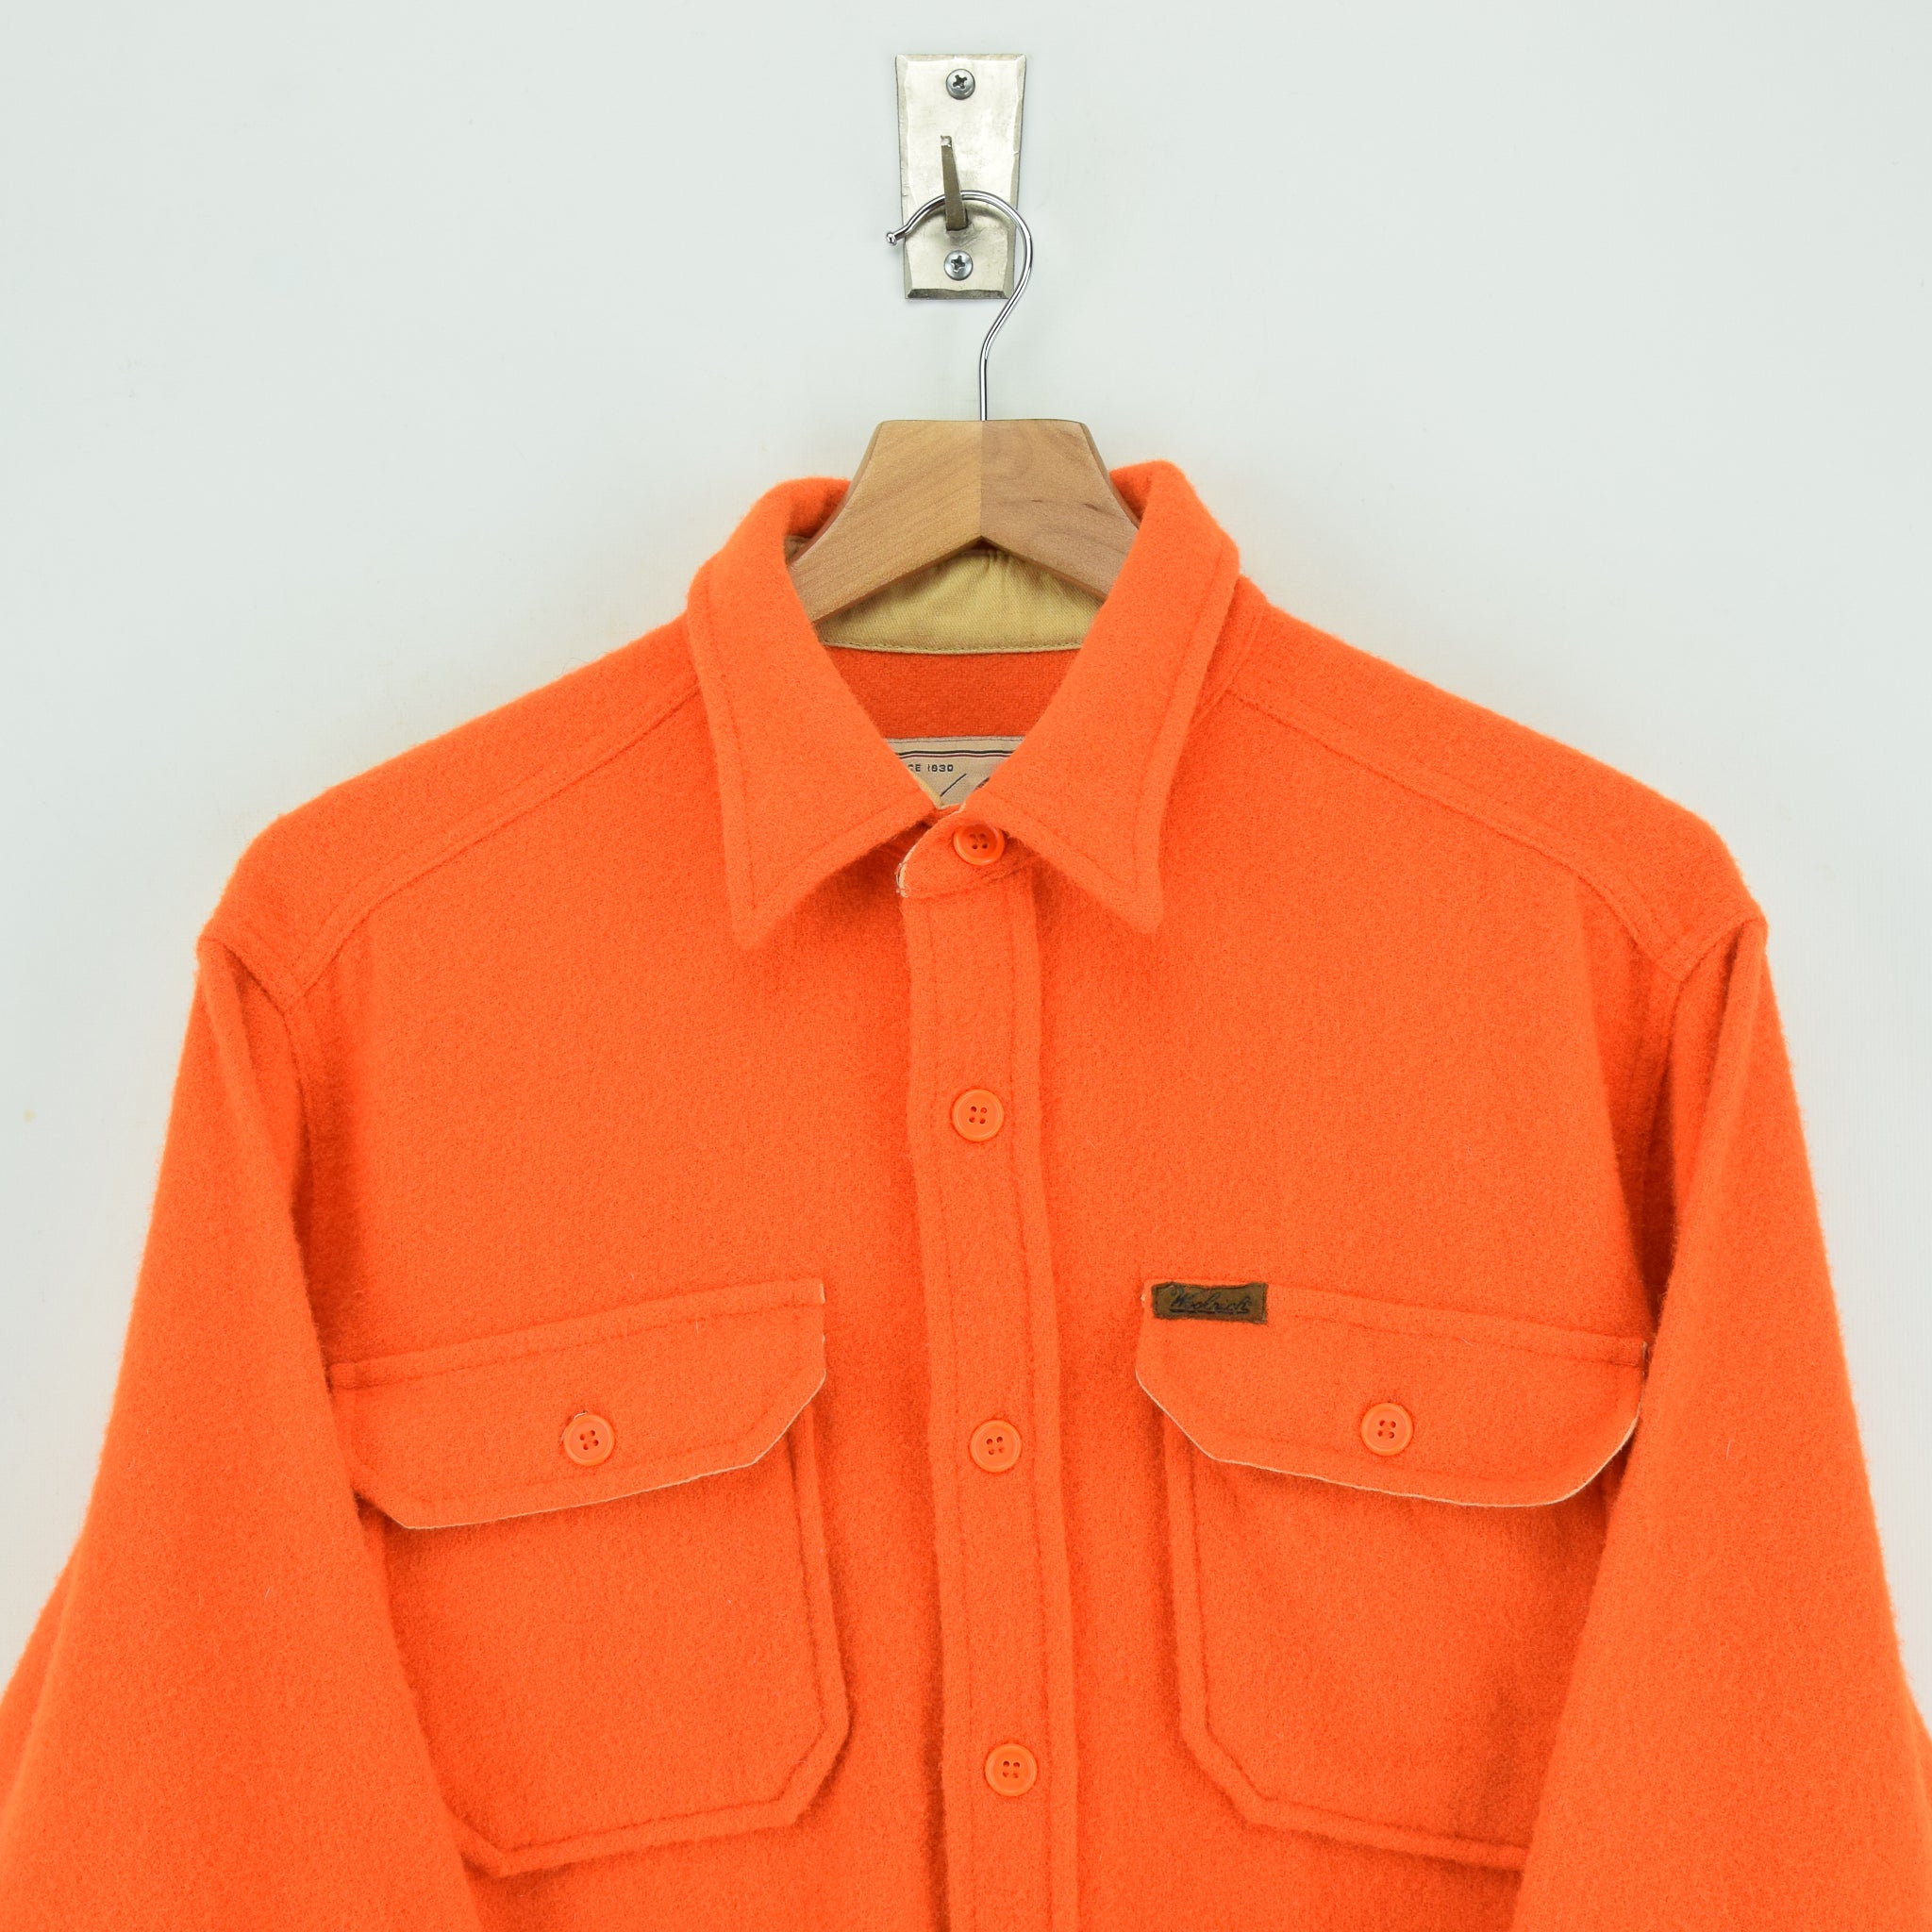 Vintage Woolrich Bright Orange Brushed Wool CPO Style Hunting Shirt Jacket M / L chest